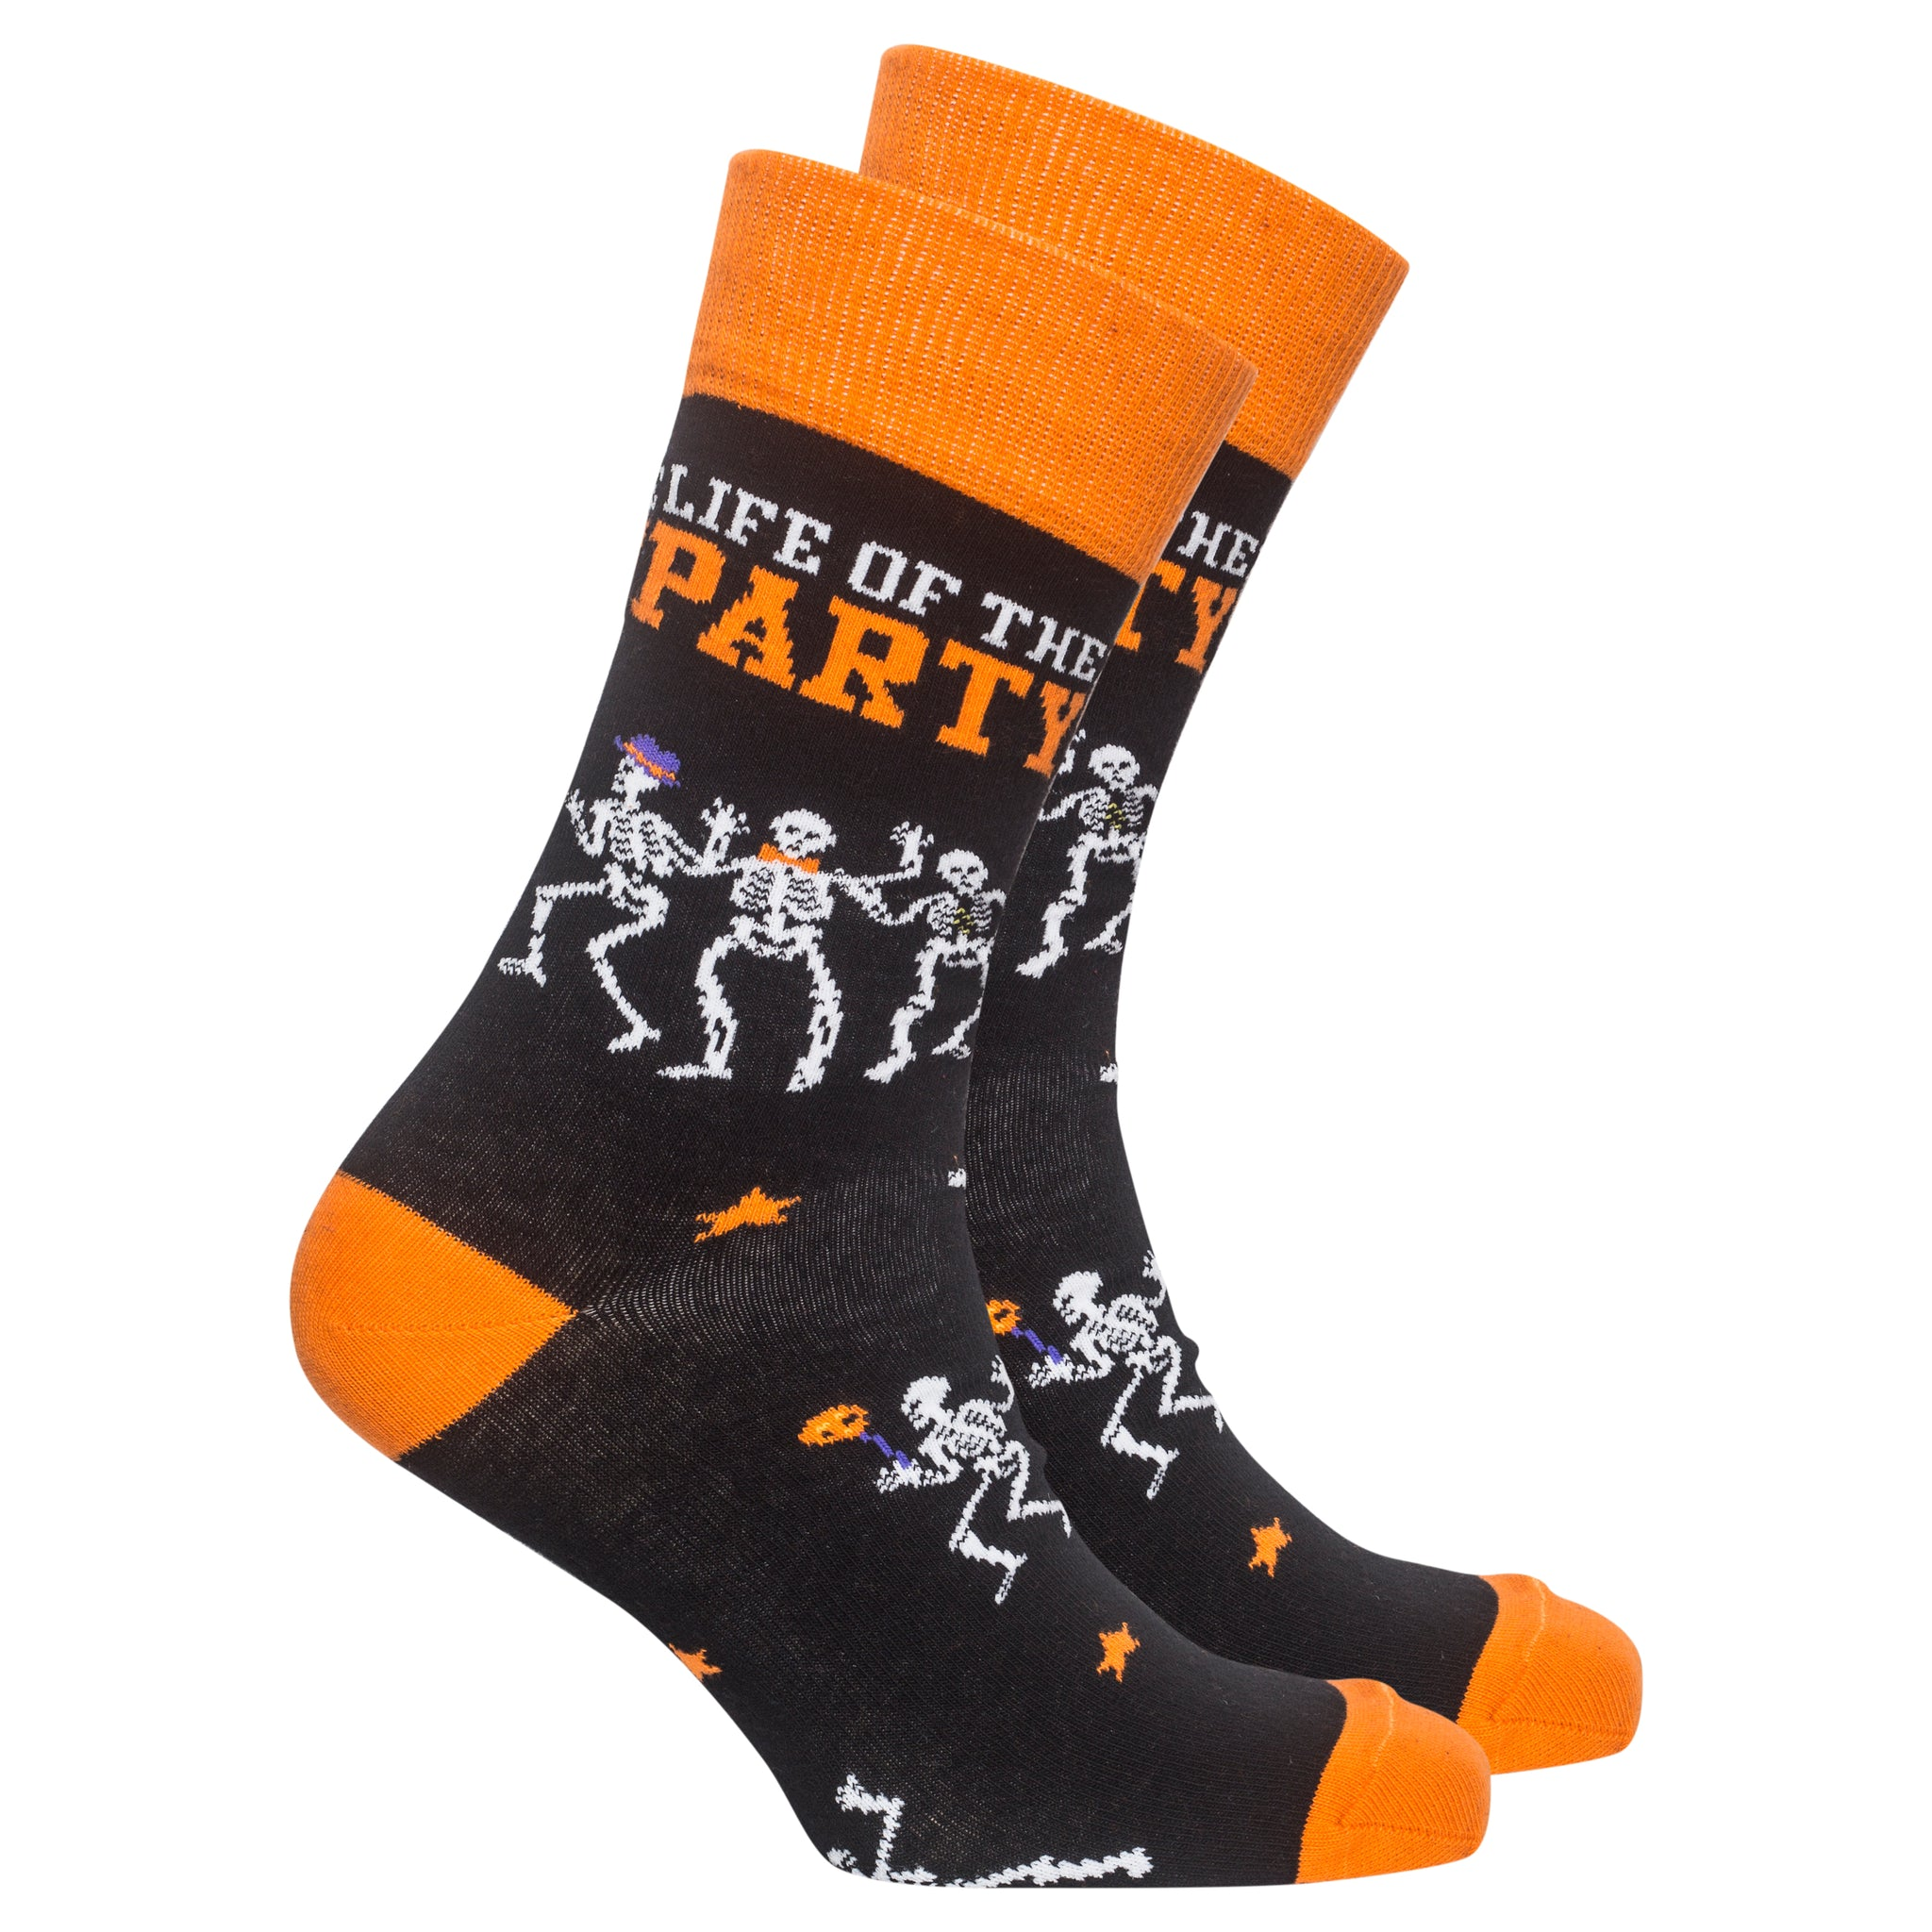 Men's Life Of The Party Socks